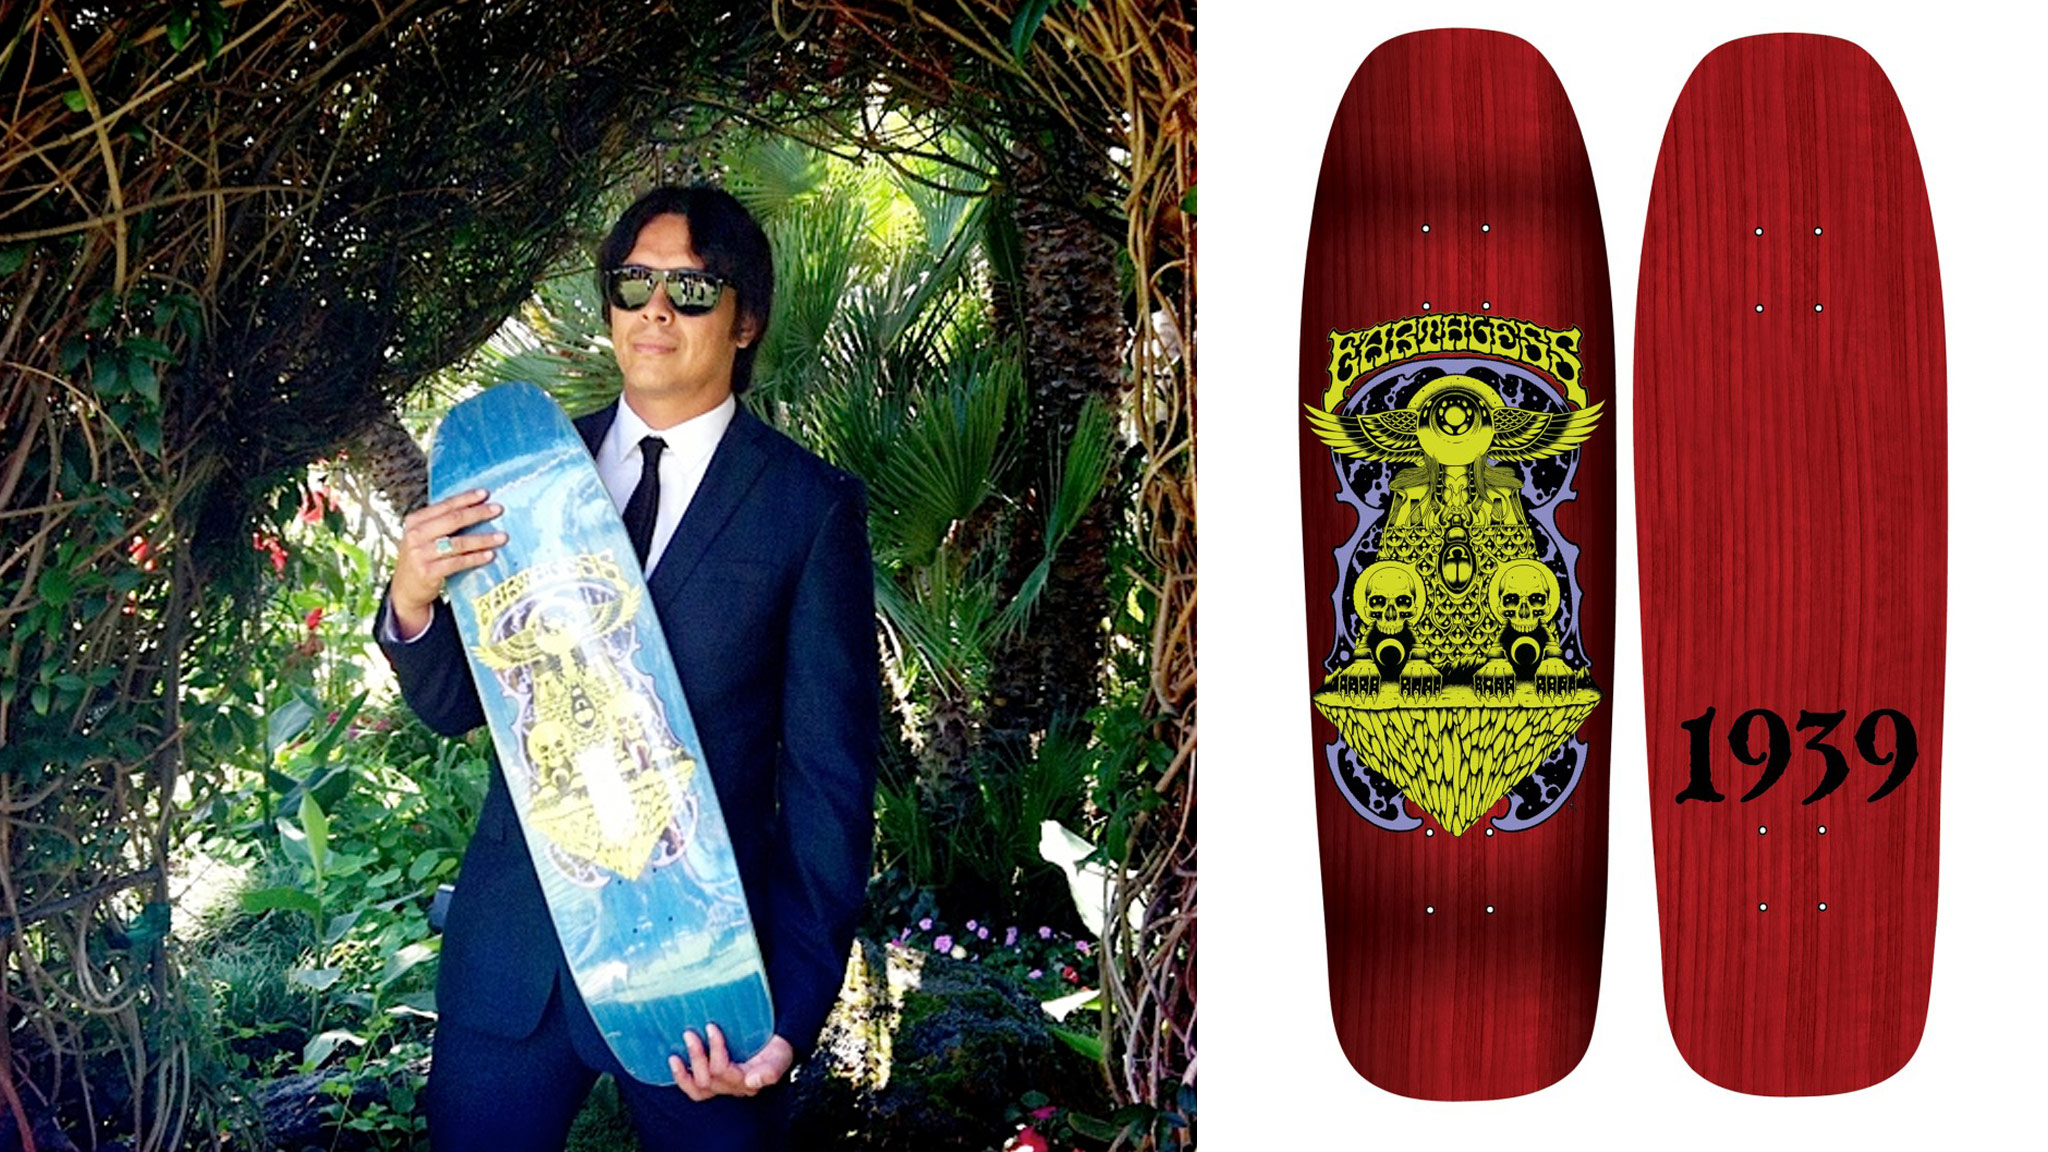 I chose this shape, as it is what I ride these days, says Earthless drummer Mario Rubalcaba while holding the board during his wedding reception.